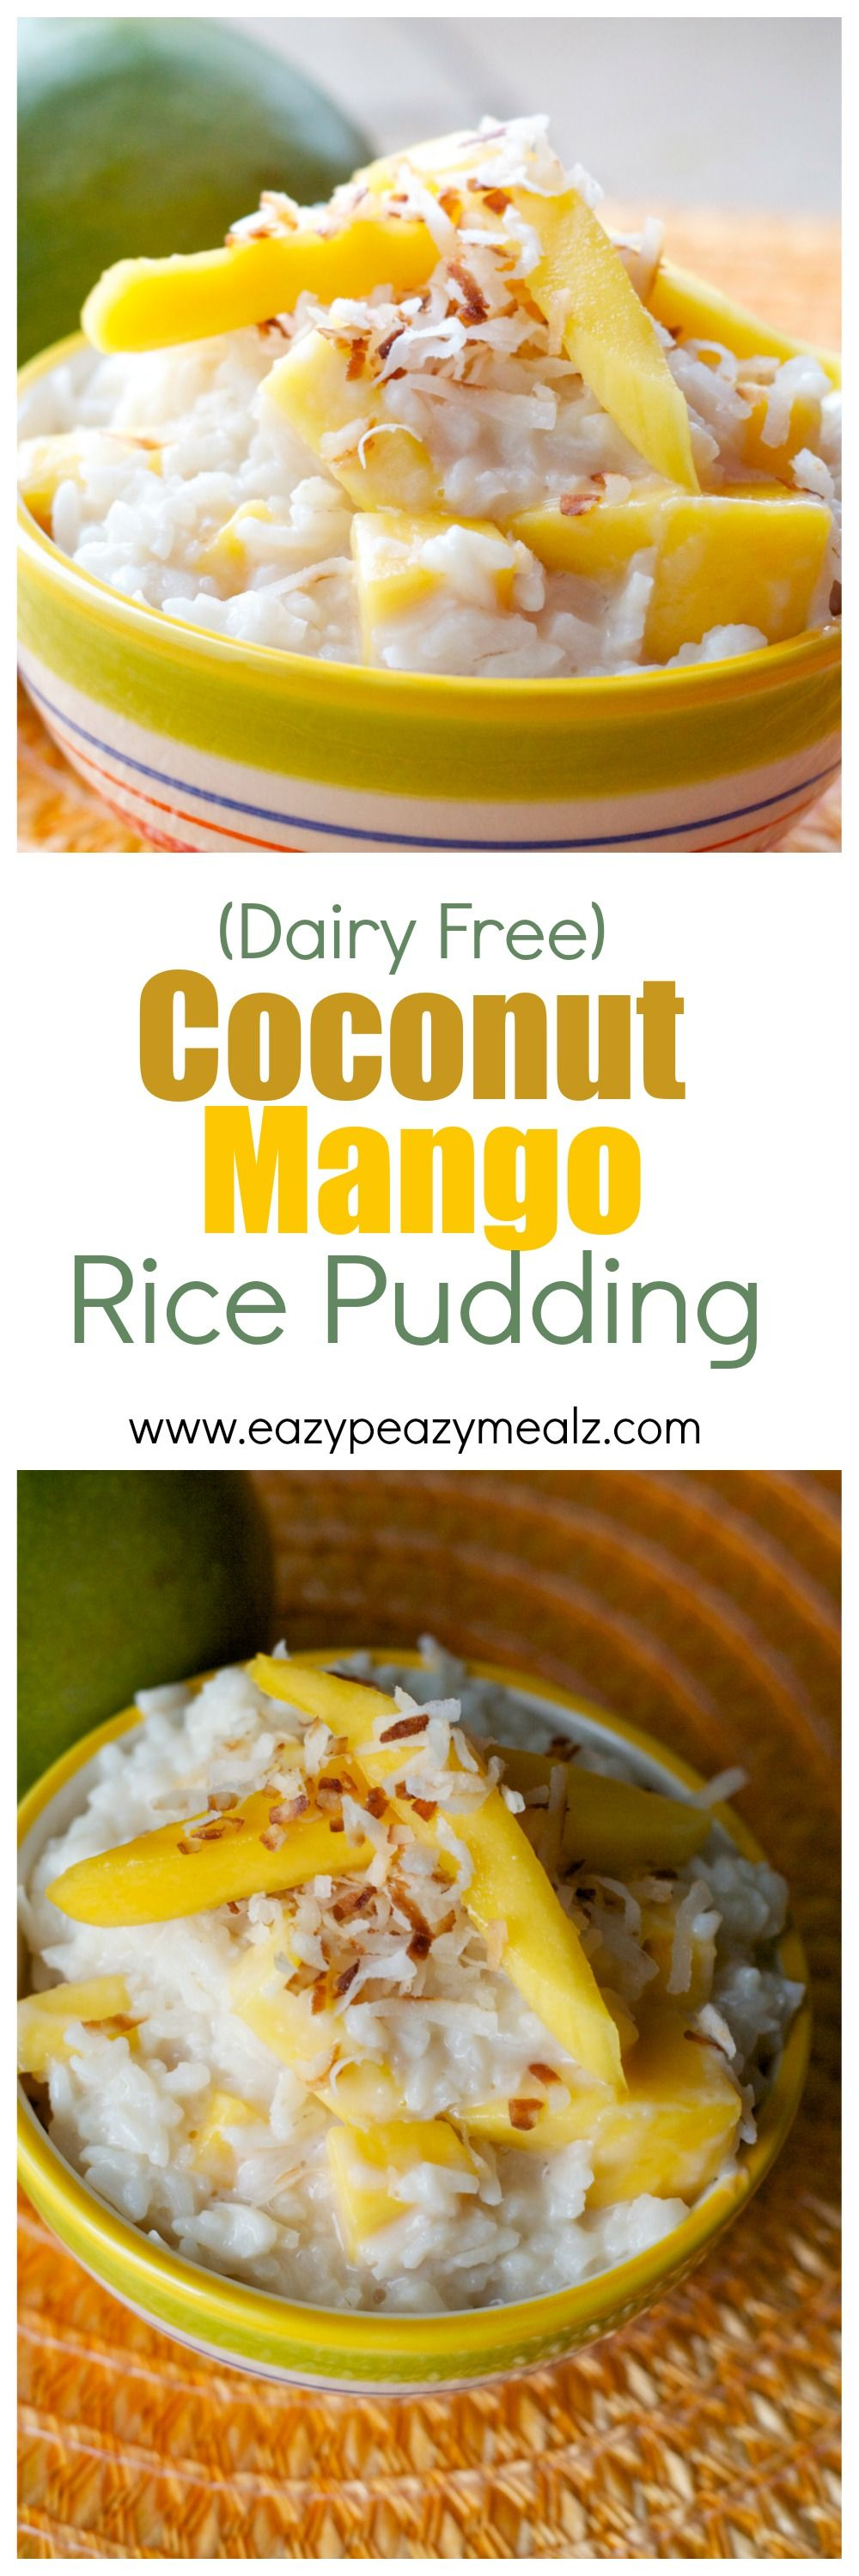 Coconut Mango Rice Pudding | Recipe | Food, Cooking ...